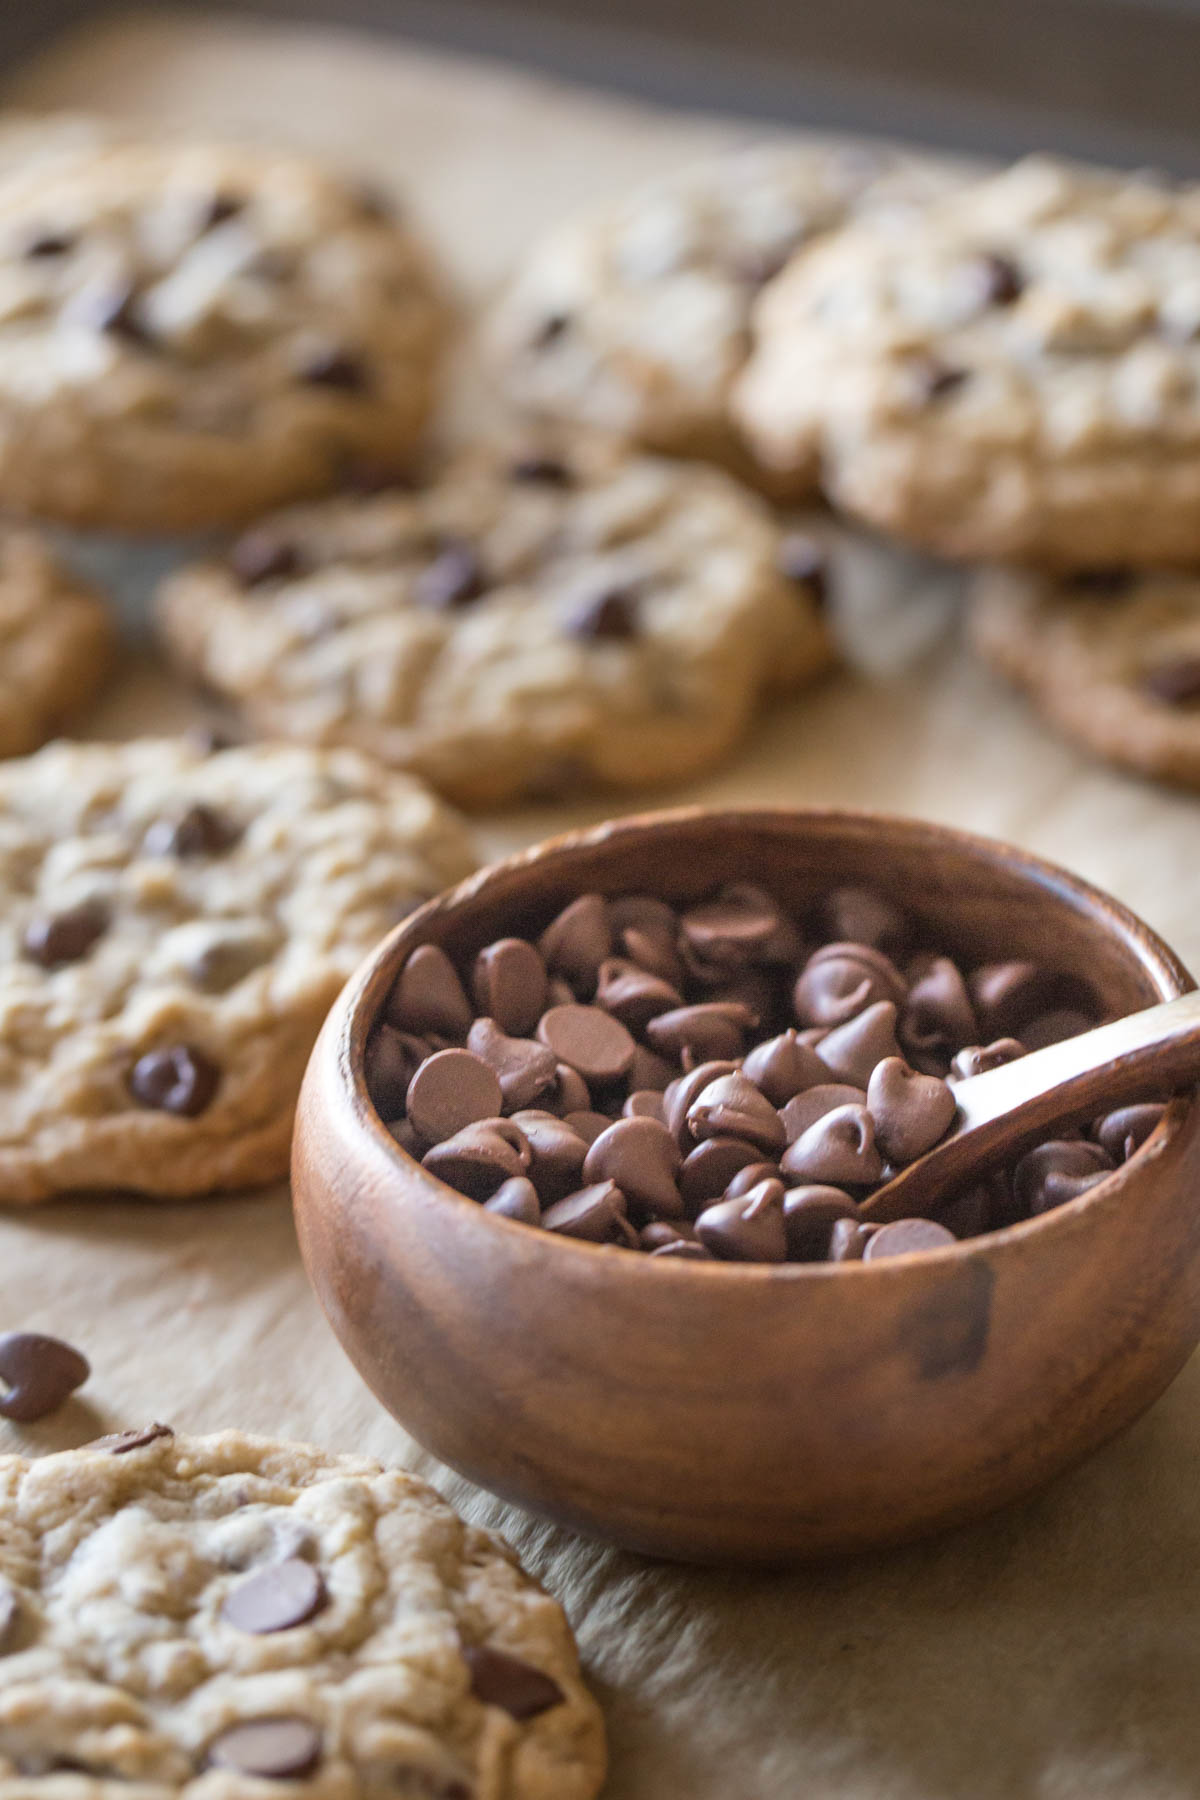 Bakery Style Oatmeal Chocolate Chip Cookies on a parchment paper lined baking sheet, along with a small wood bowl of chocolate chips.